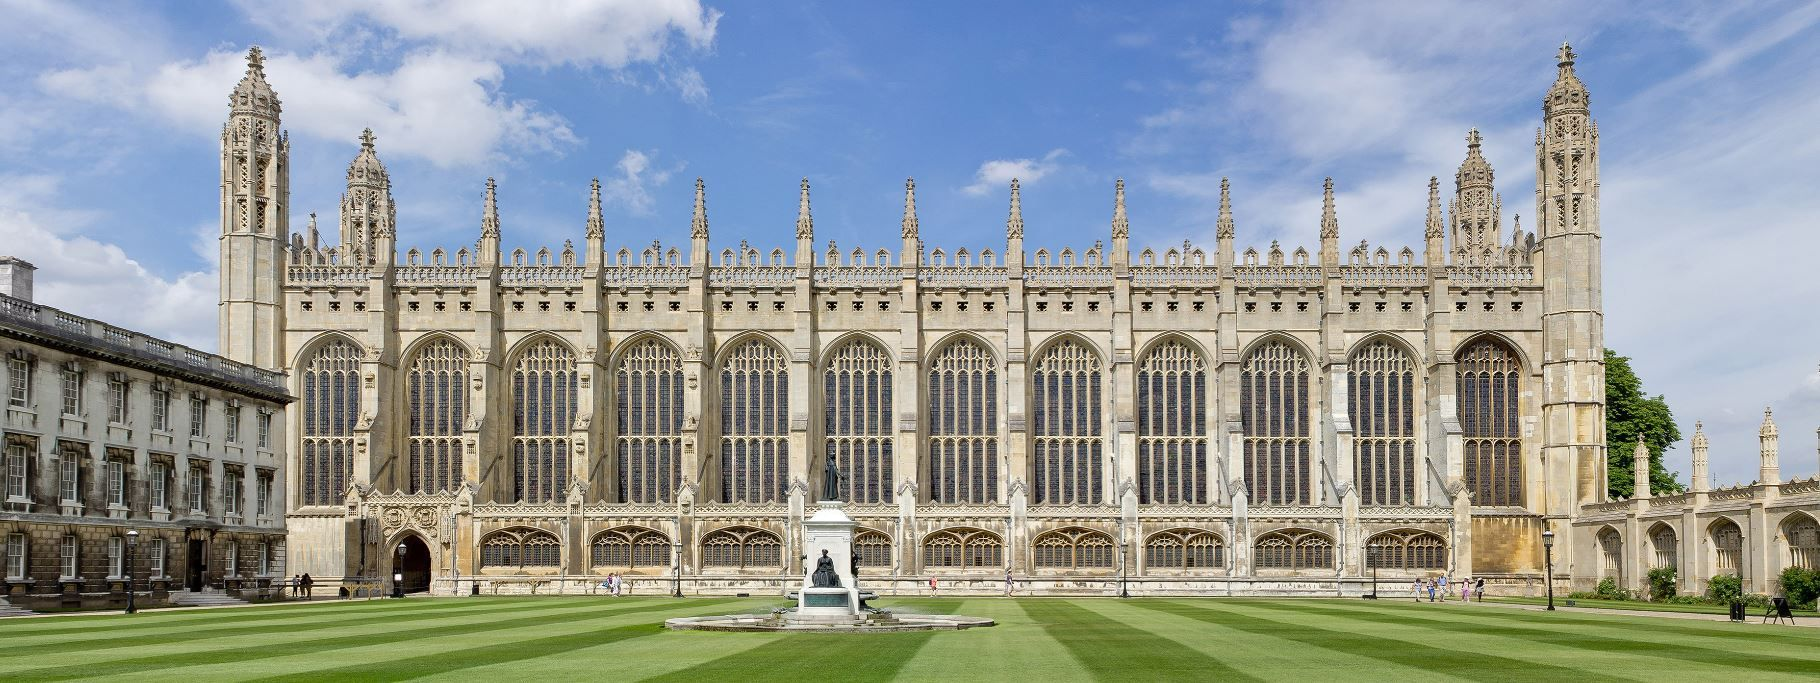 Cambridge faculty of law 3rd best law school in the world 2021